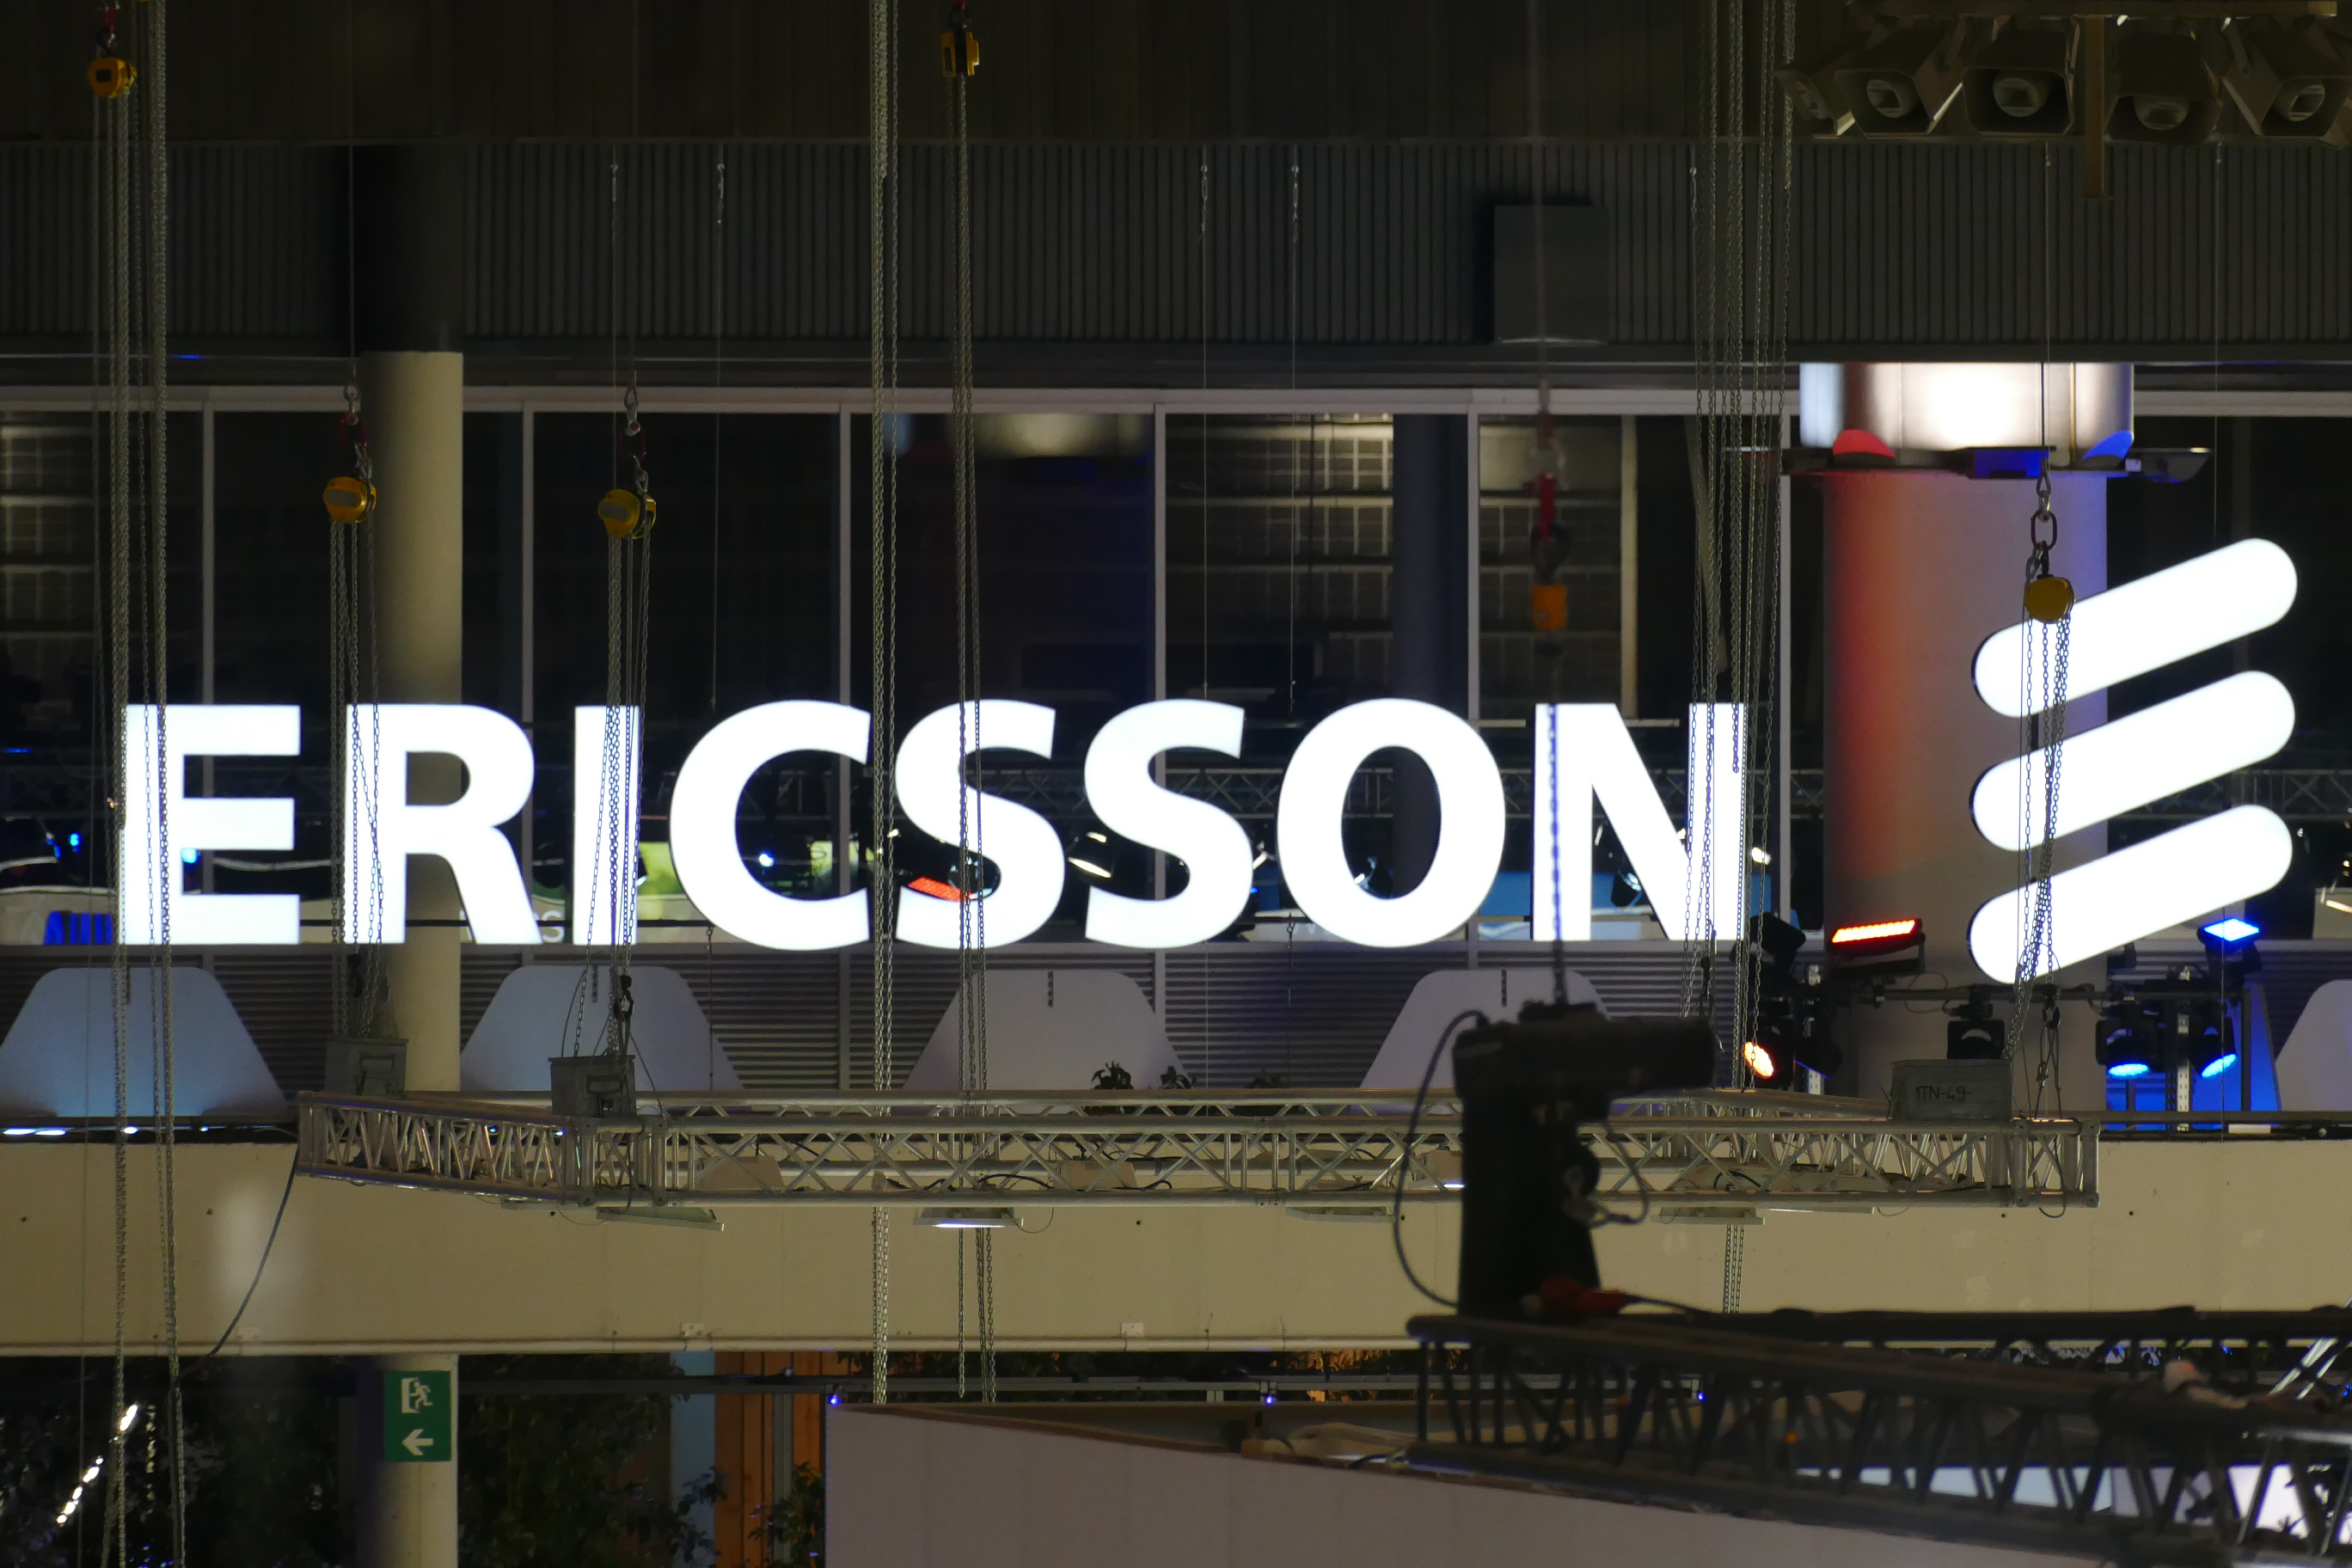 20160224-stock-mwc-ericsson-sign-1-100647678-orig